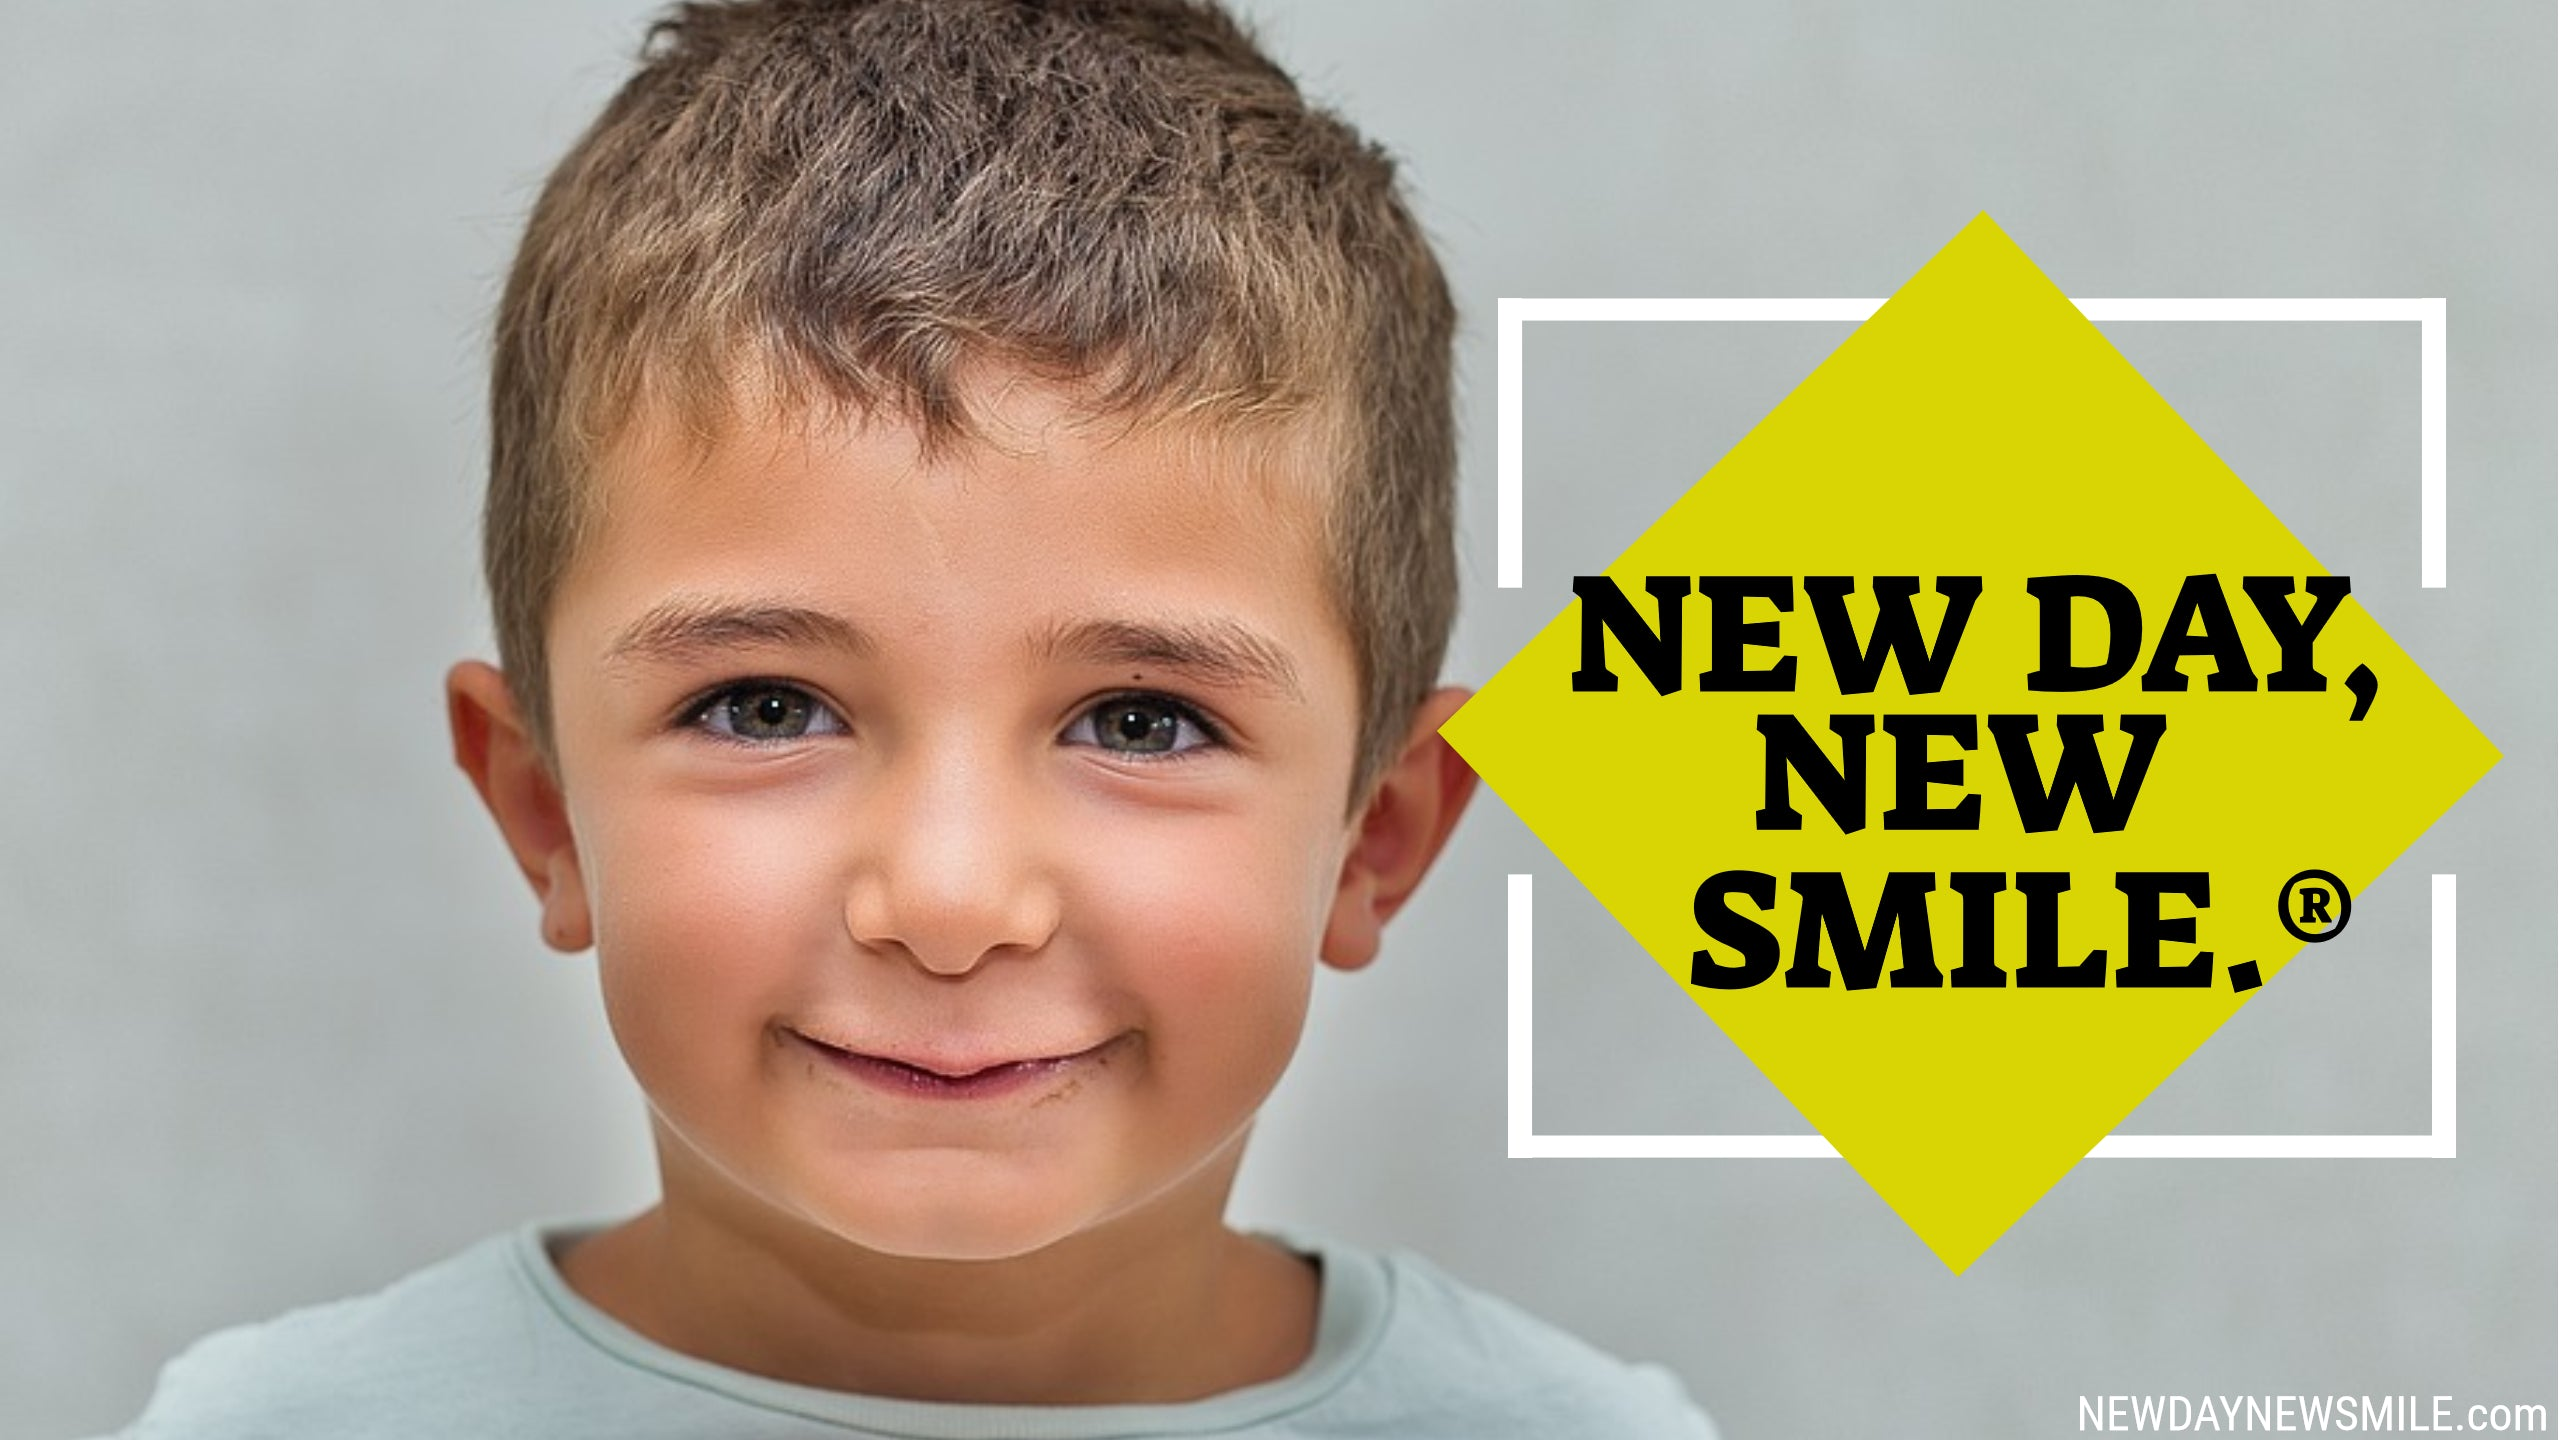 NEWDAYNEWSMILE.com CHILDREN'S CLOTHING